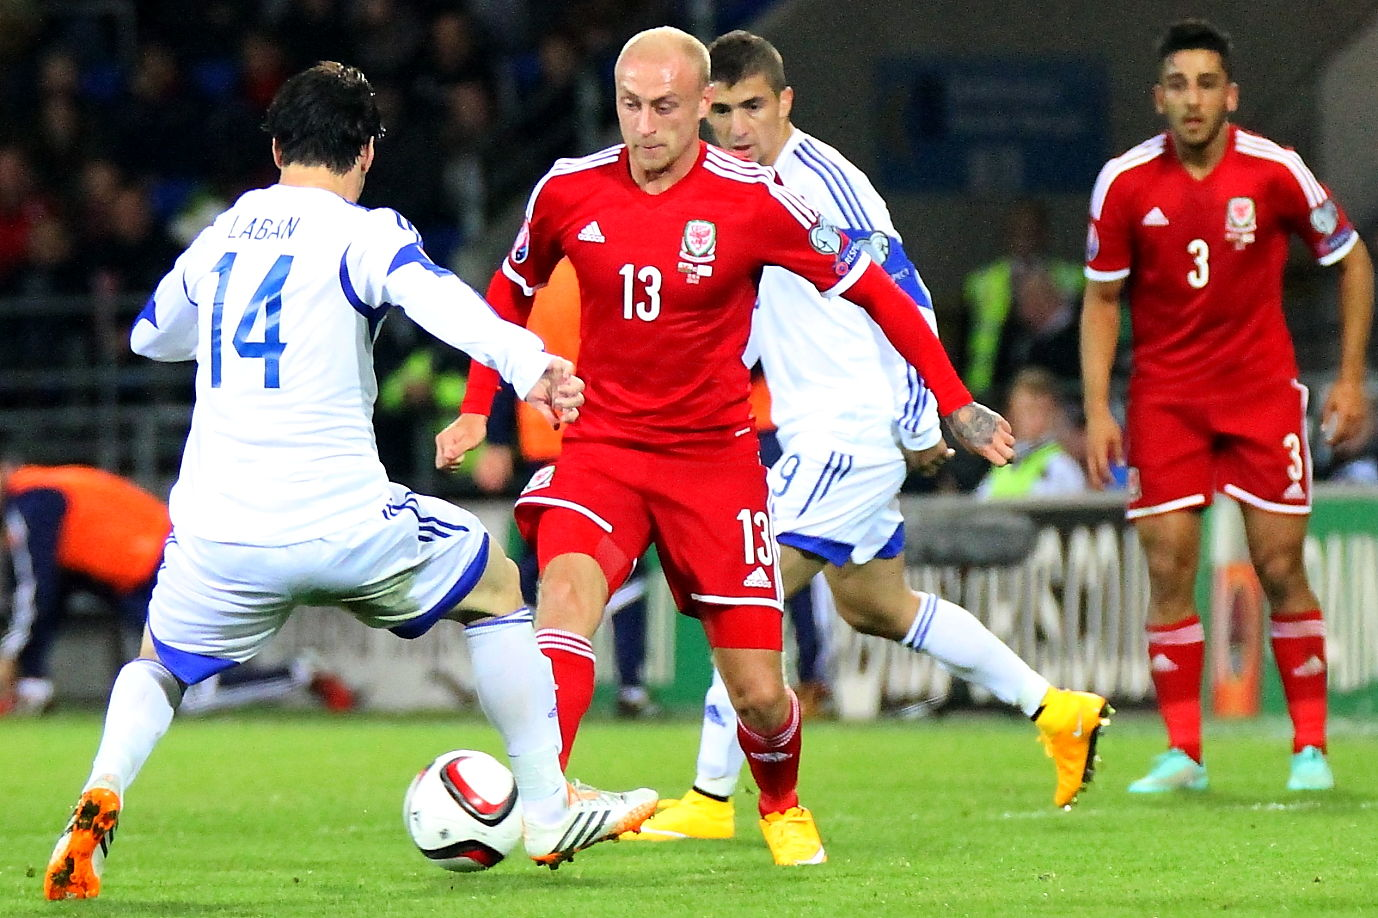 Wales Defeat Cyprus in tense encounter.